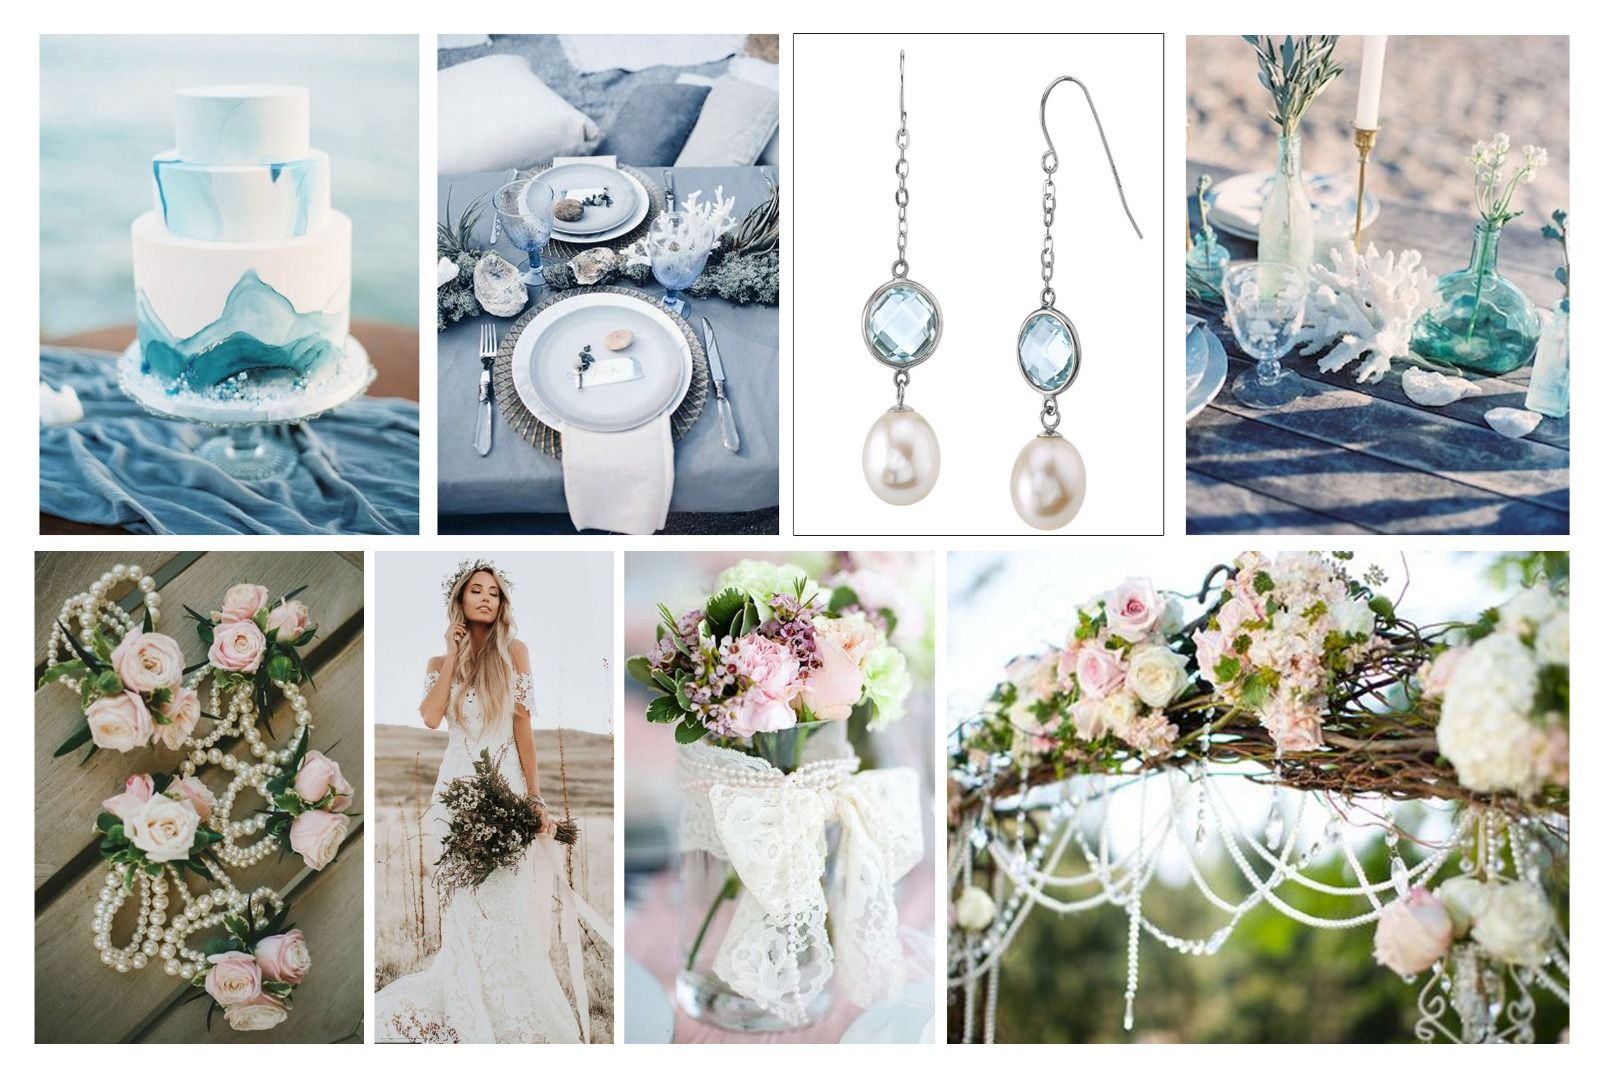 Pearl Bridal Jewelry and Decor for a Stunning Beach Wedding